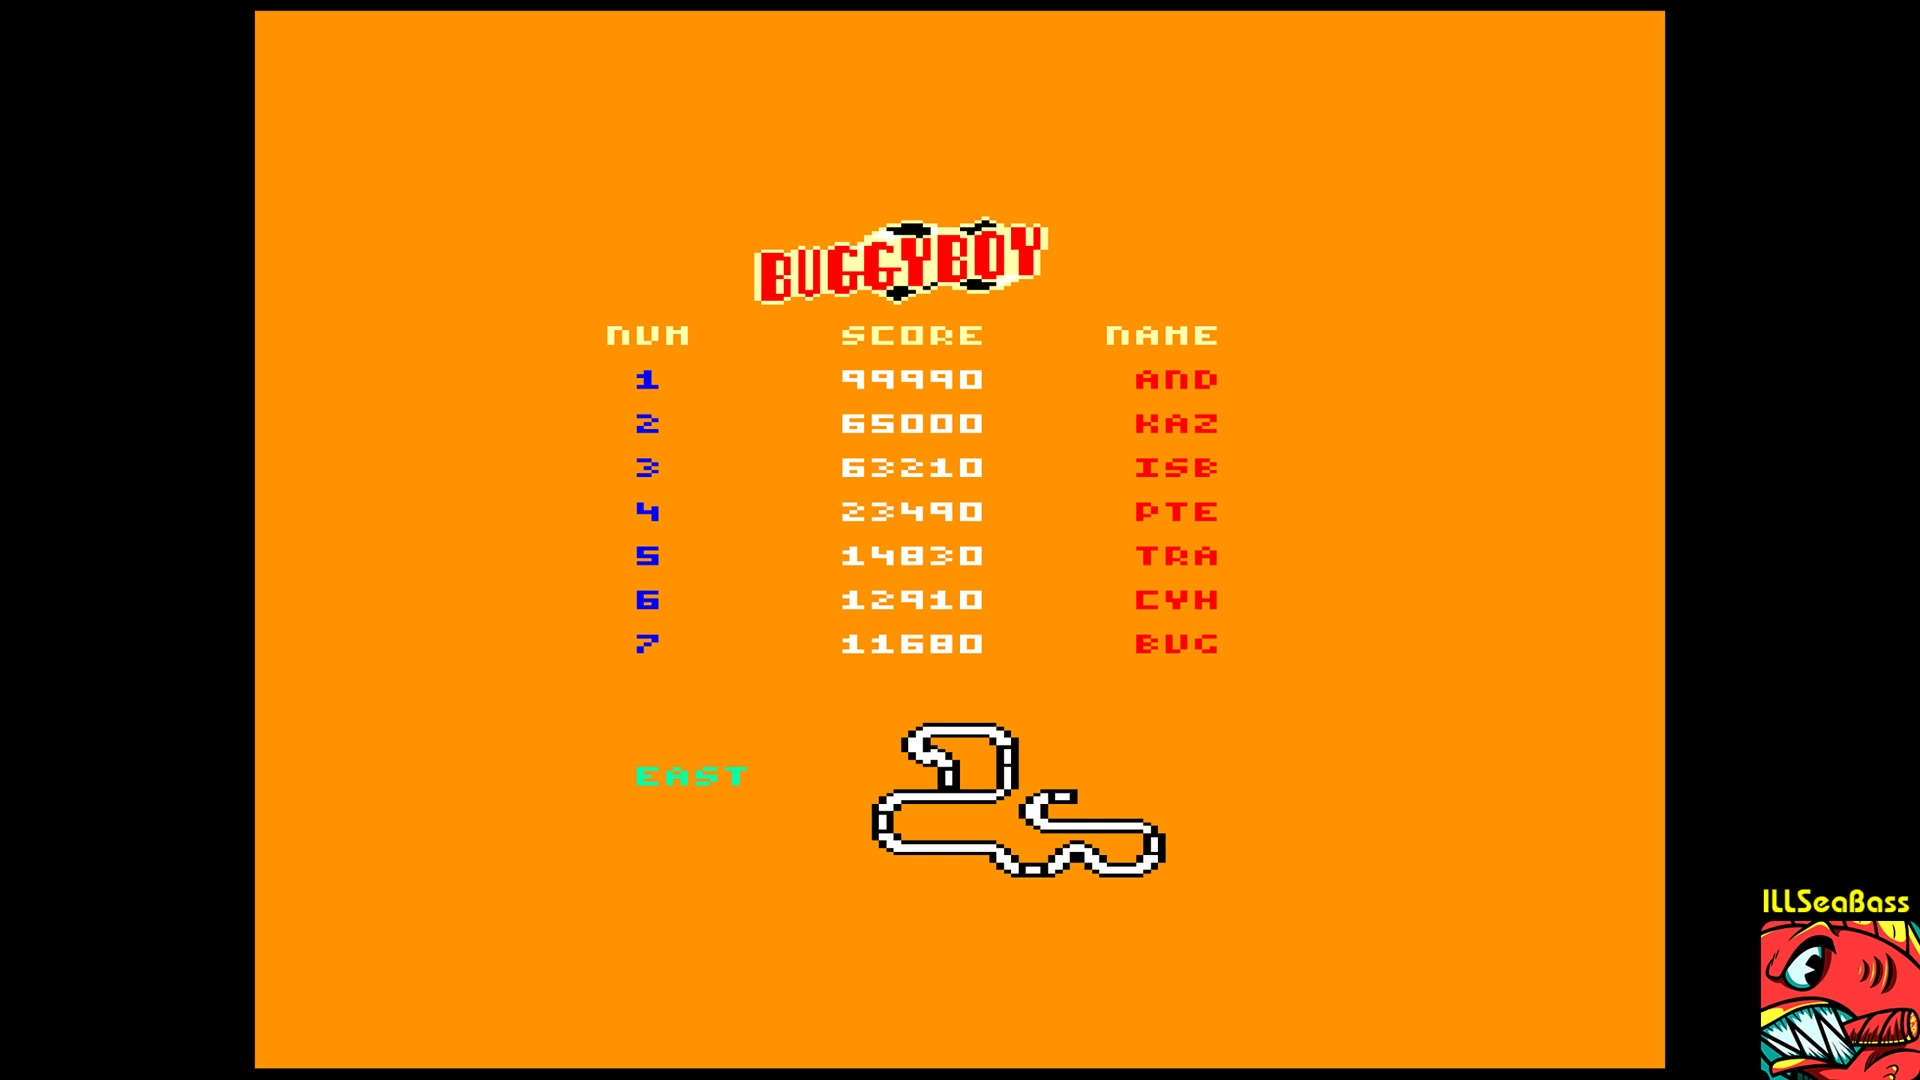 ILLSeaBass: Buggy Boy [East] (Amstrad CPC Emulated) 63,210 points on 2017-11-06 20:22:13